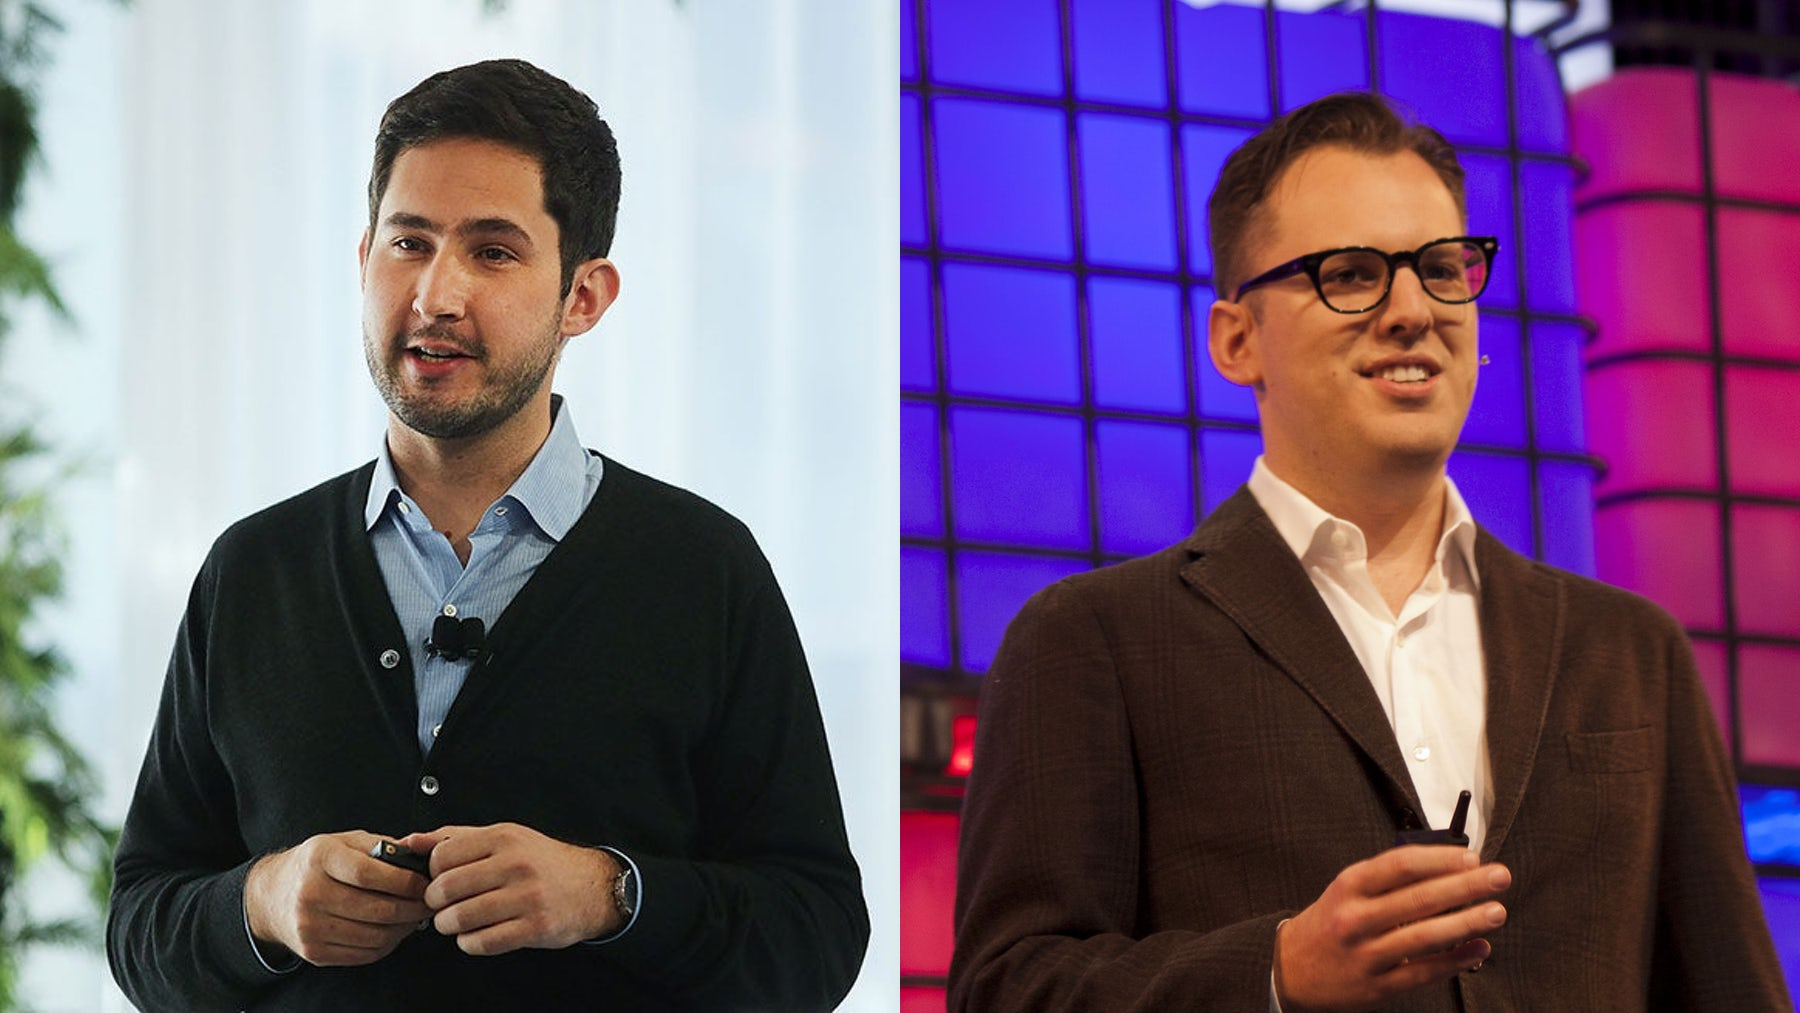 Kevin Systrom and Mike Krieger | Source: Getty Images and Shutterstock